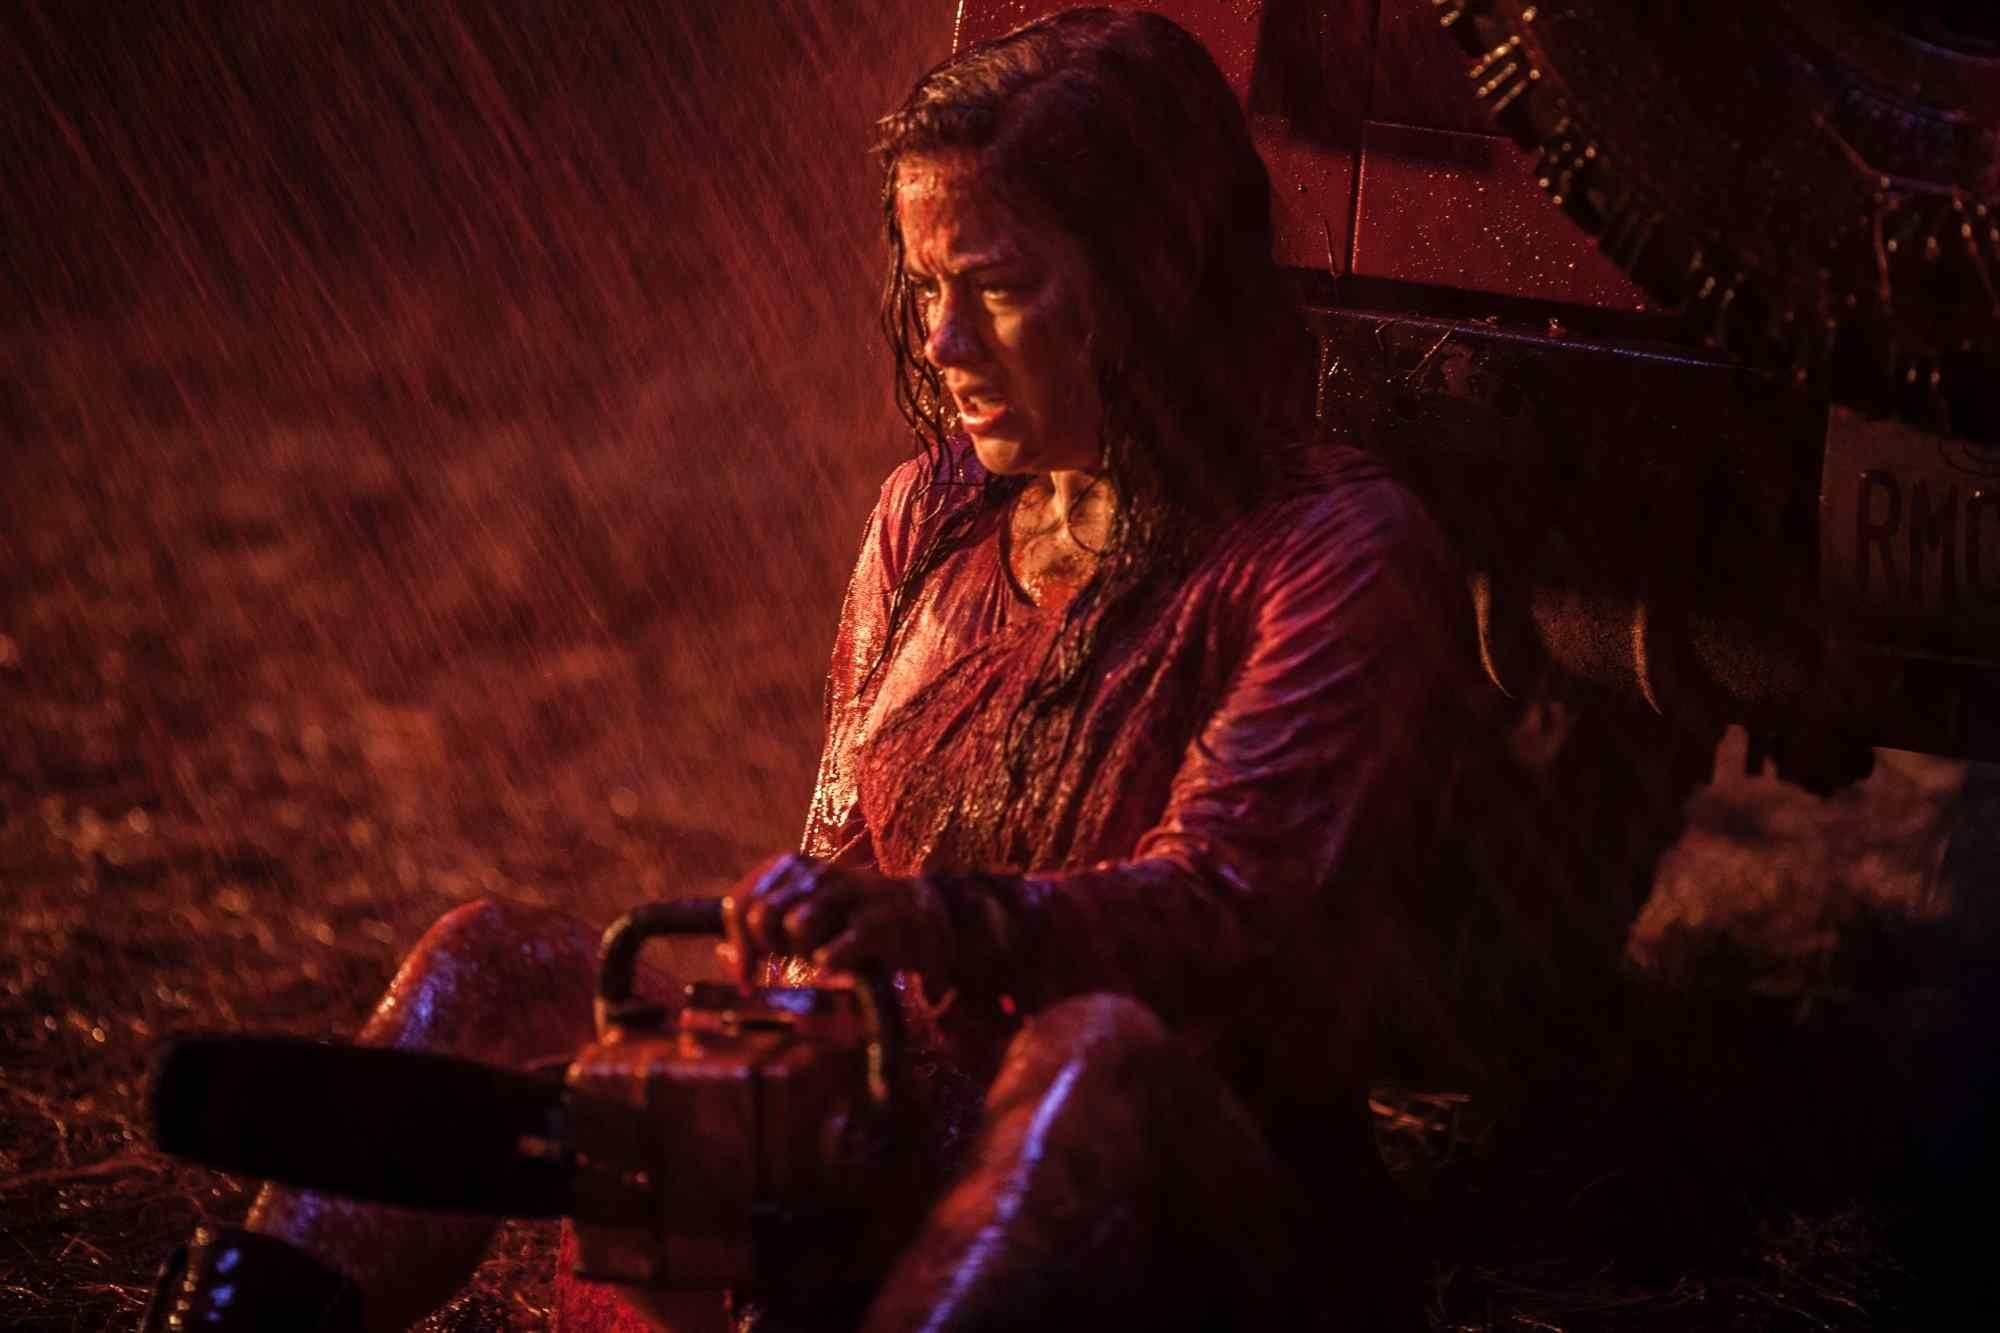 Mia (Jane Levy) with chainsaw in hand in the Fede Alvarez remake Evil Dead 2013.